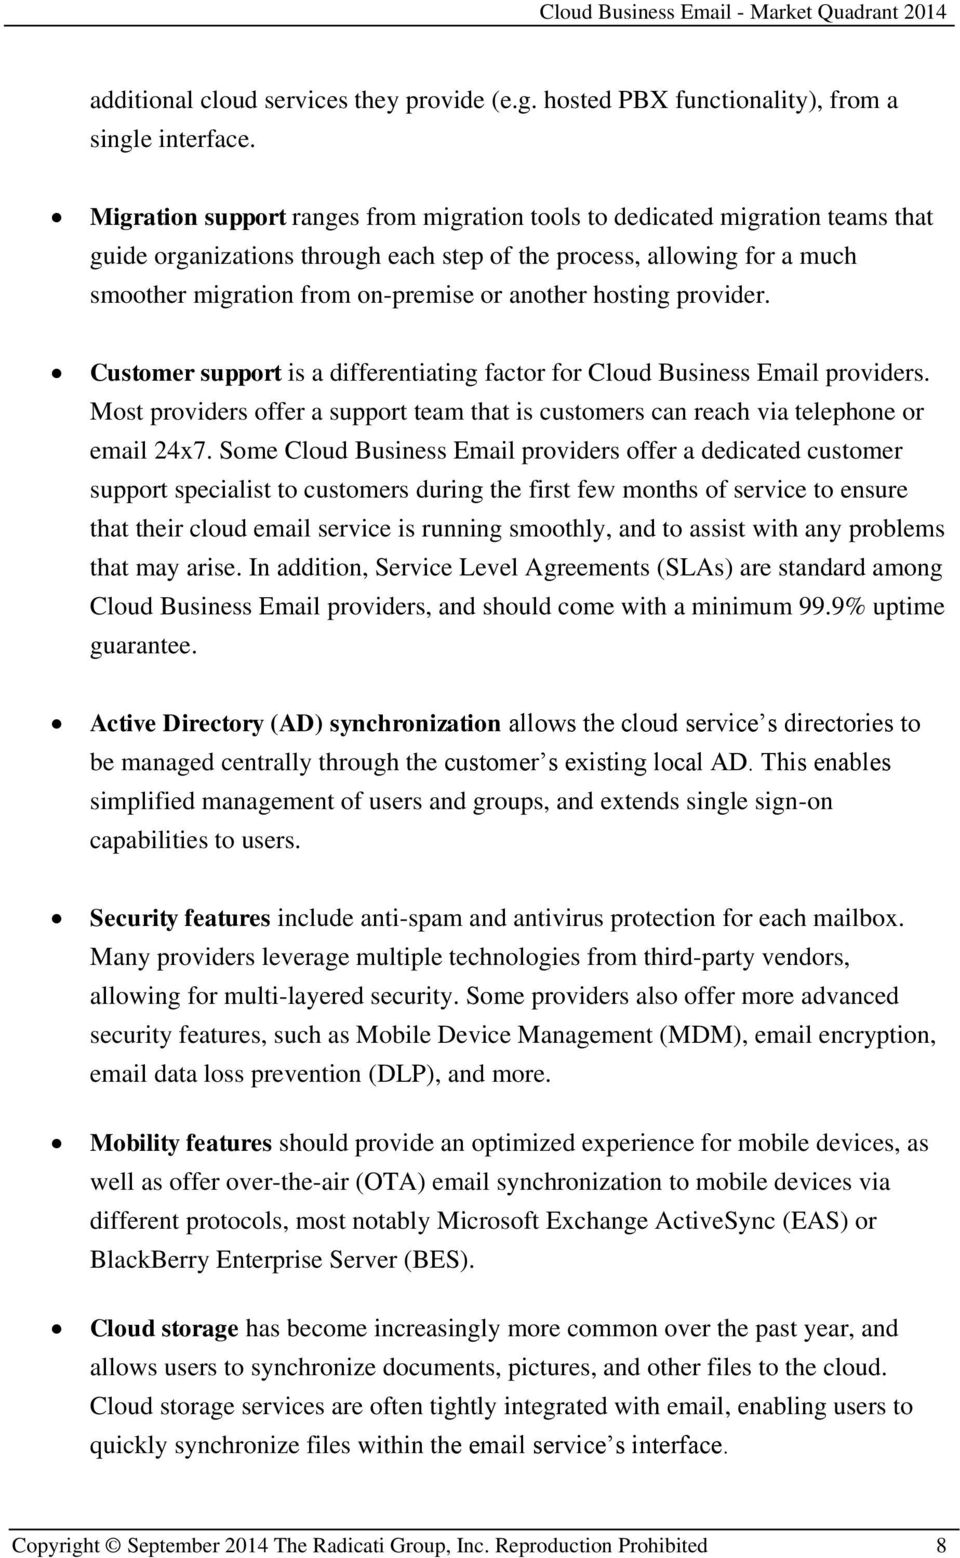 hosting provider. Customer support is a differentiating factor for Cloud Business Email providers. Most providers offer a support team that is customers can reach via telephone or email 24x7.